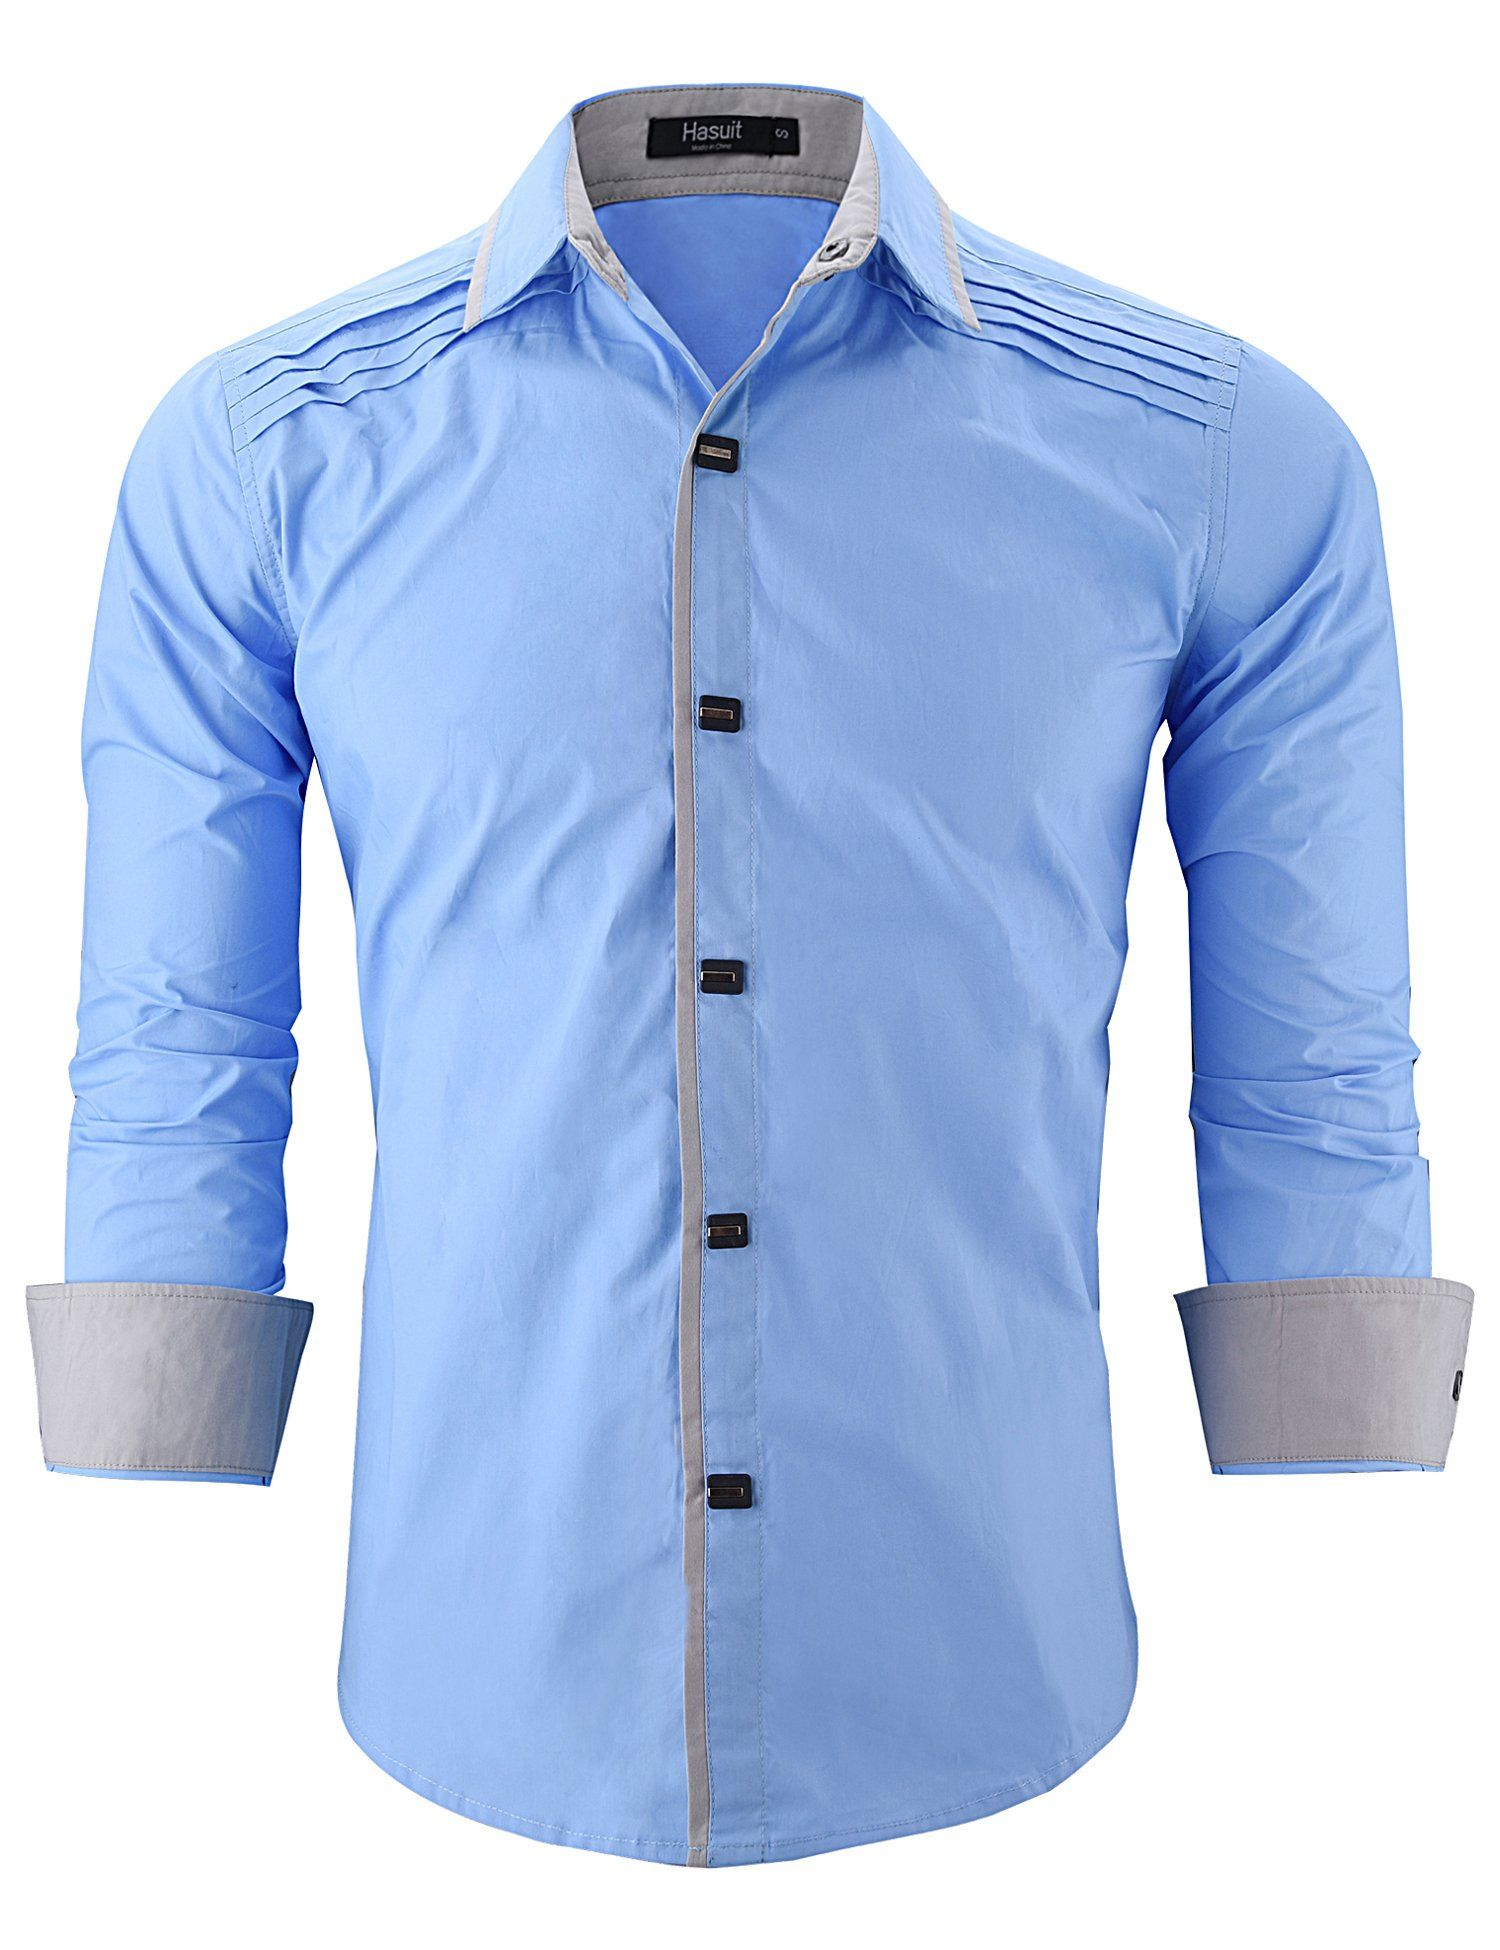 Hasuit Mens Casual Denim Button Down Shirt Long Sleeve Dress Shirts